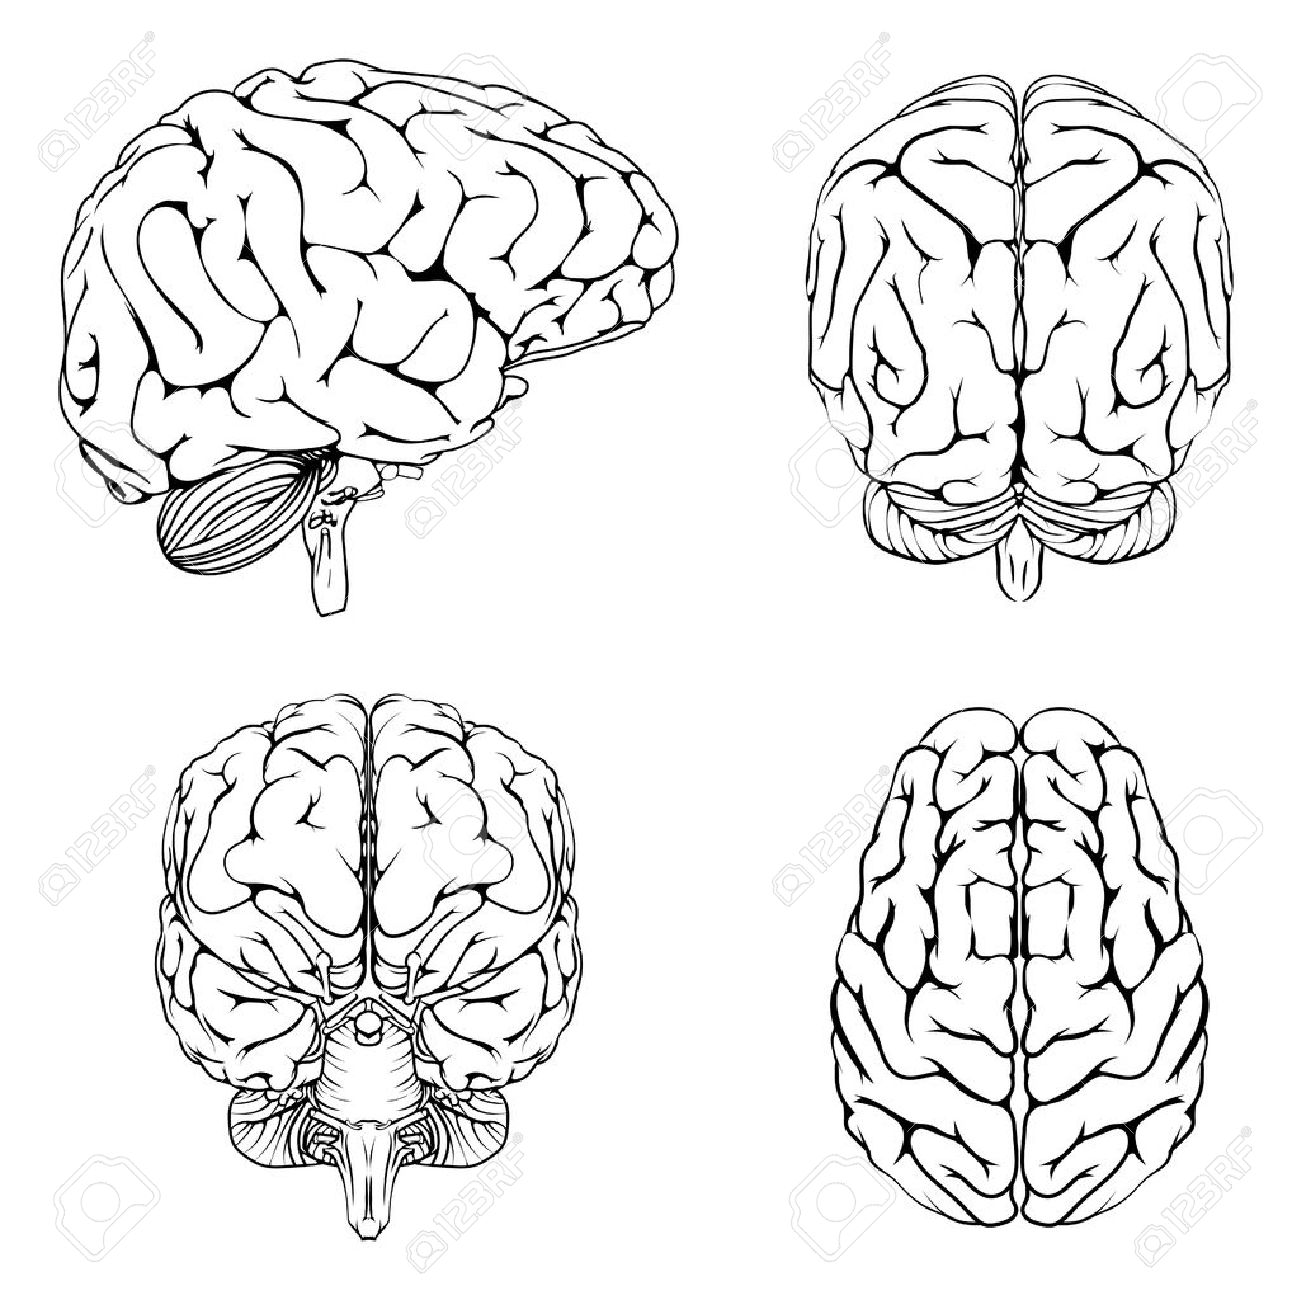 Brain Outline Drawing